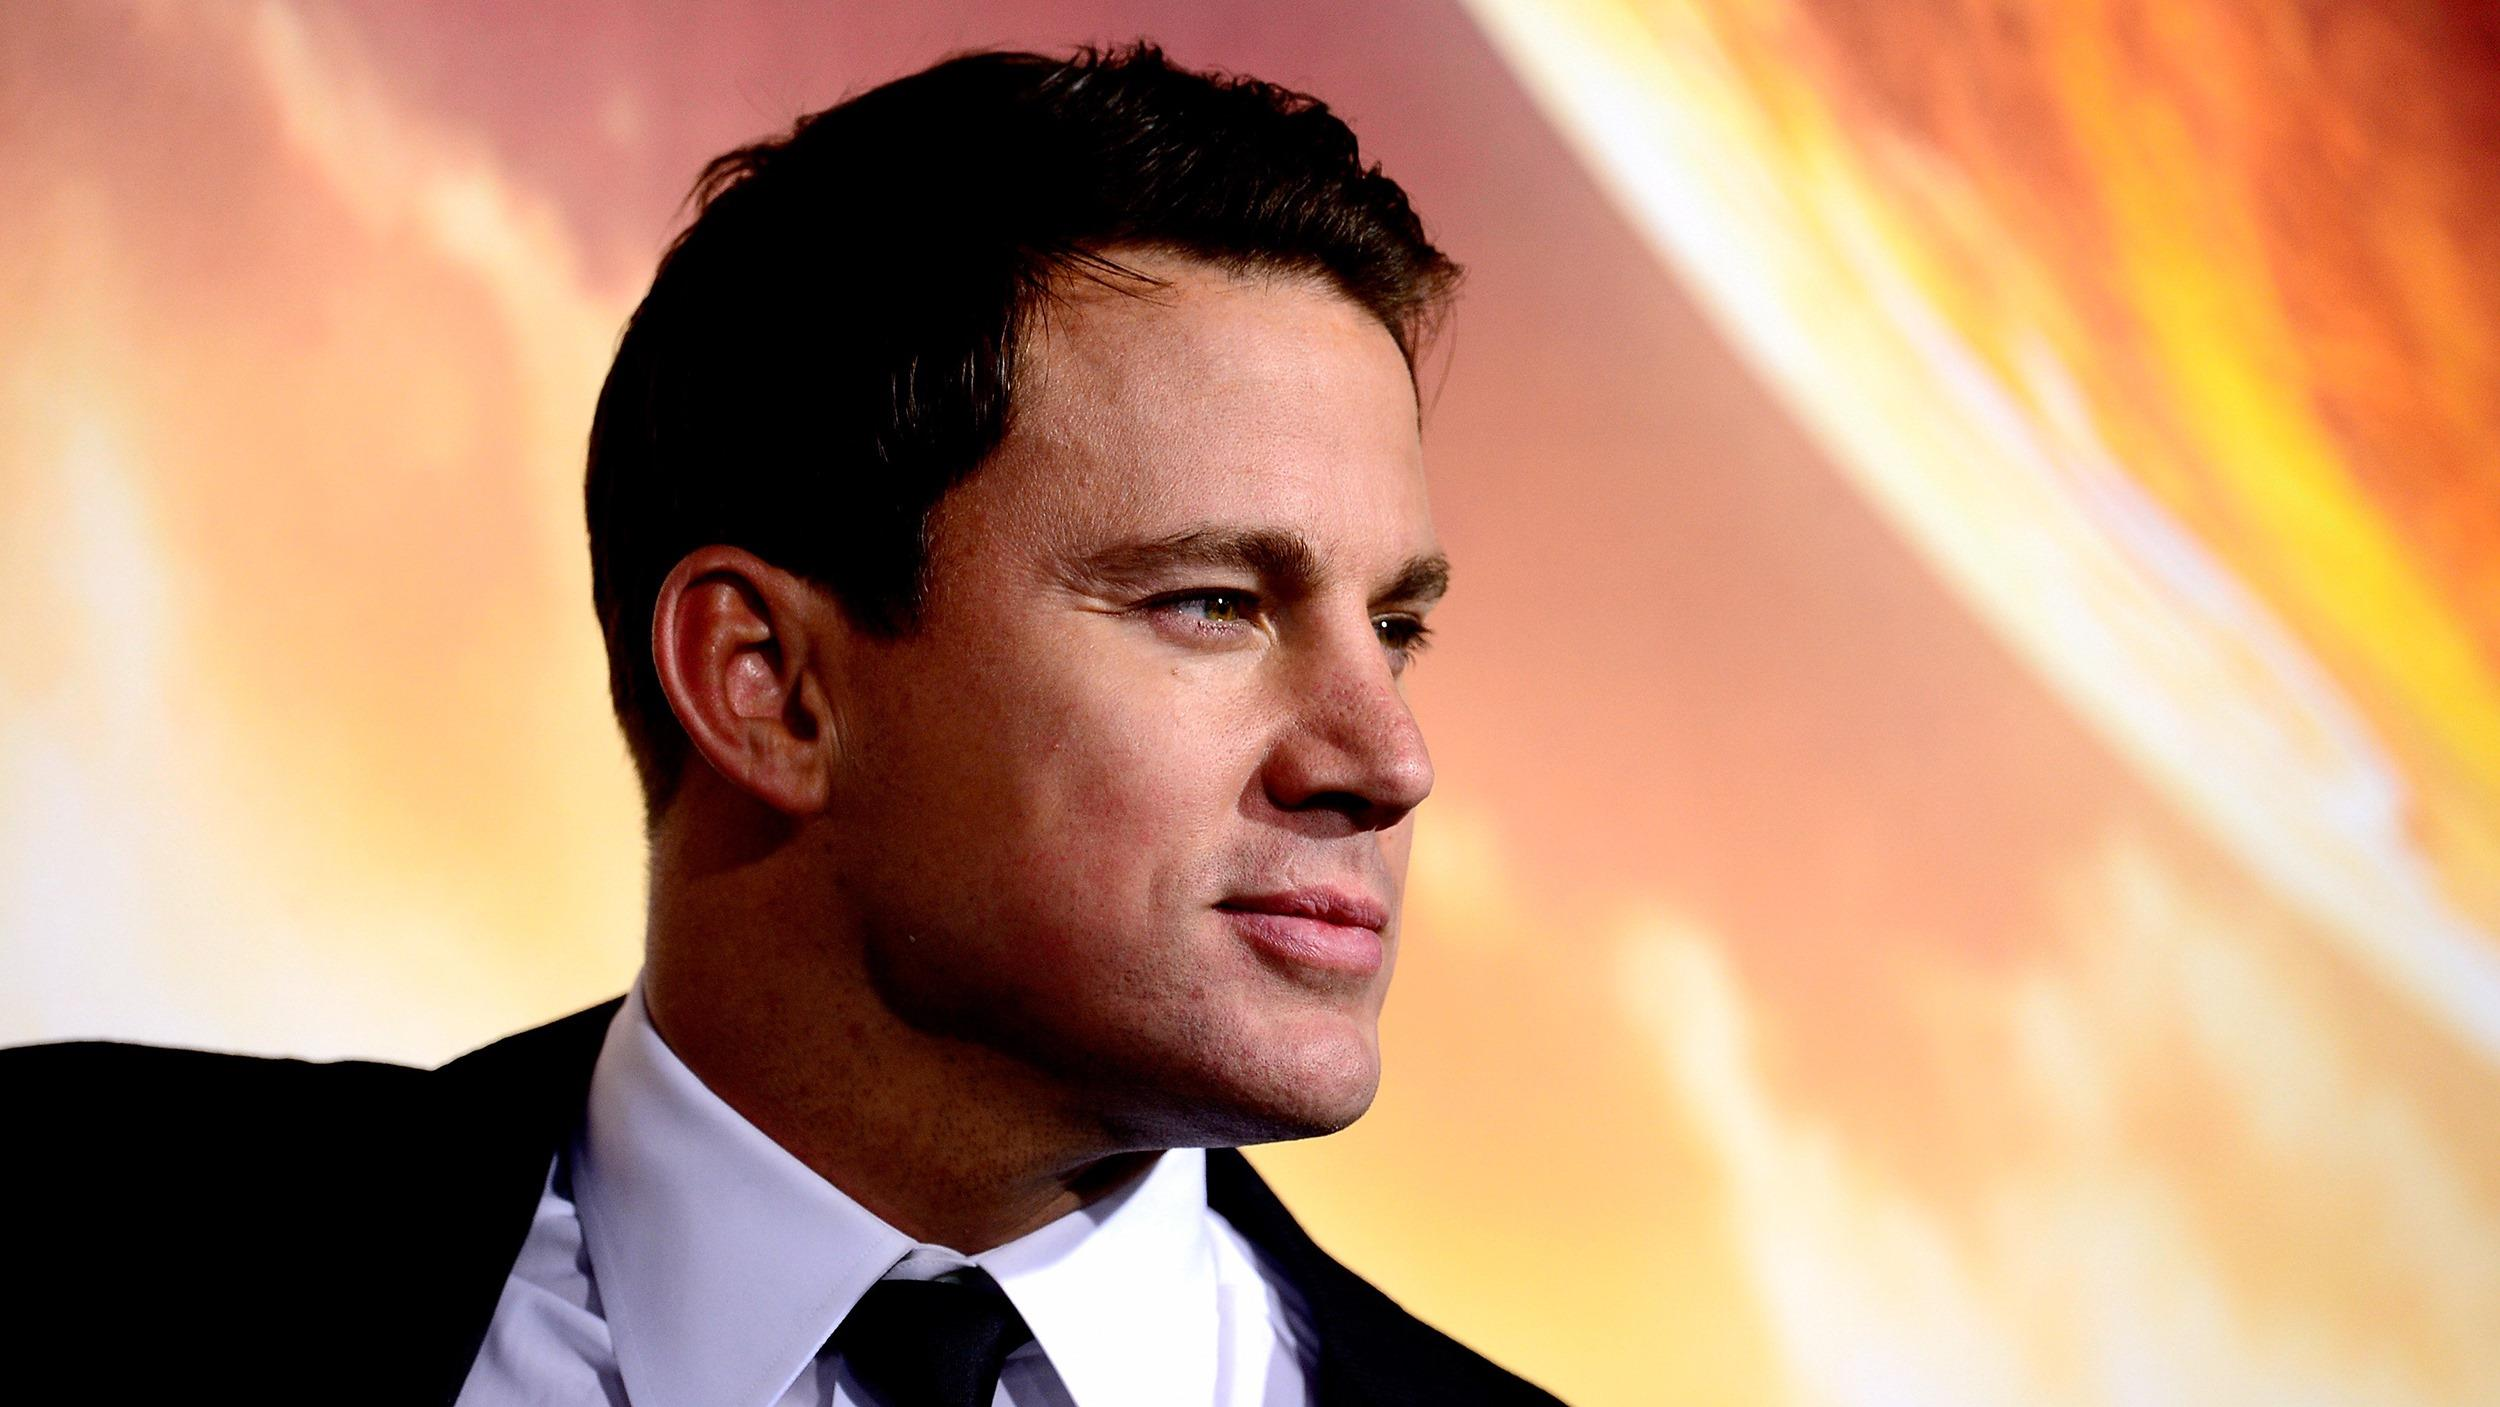 Channing Tatum says goodbye to pet goat: See the sweet photo - TODAY ... Channing Tatum